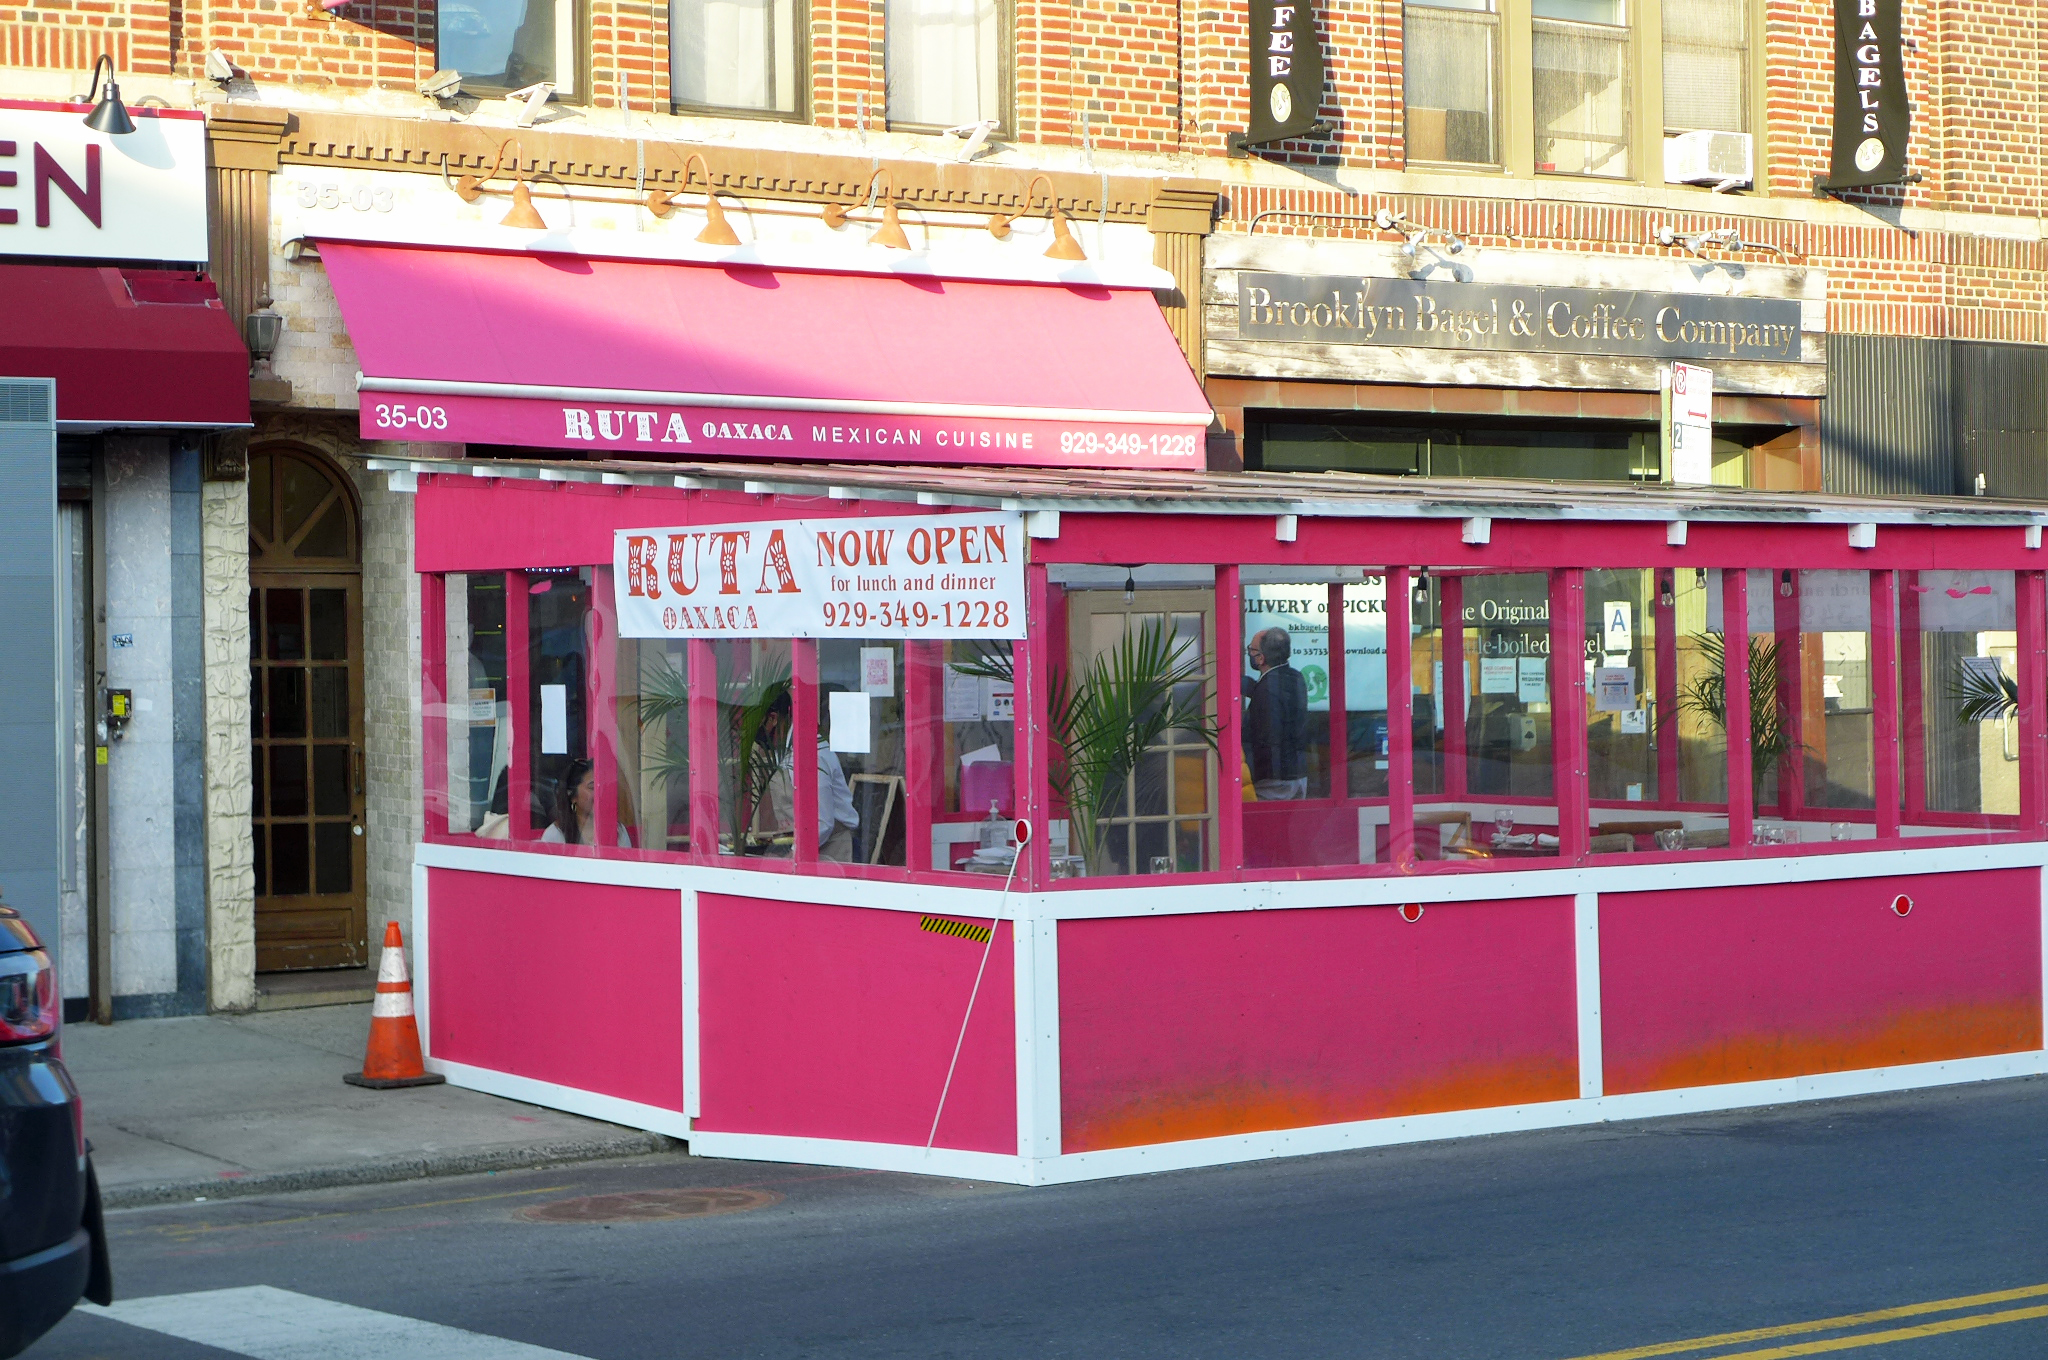 A dark pink awning and an outdoor dining enclosure in front in the same shade.